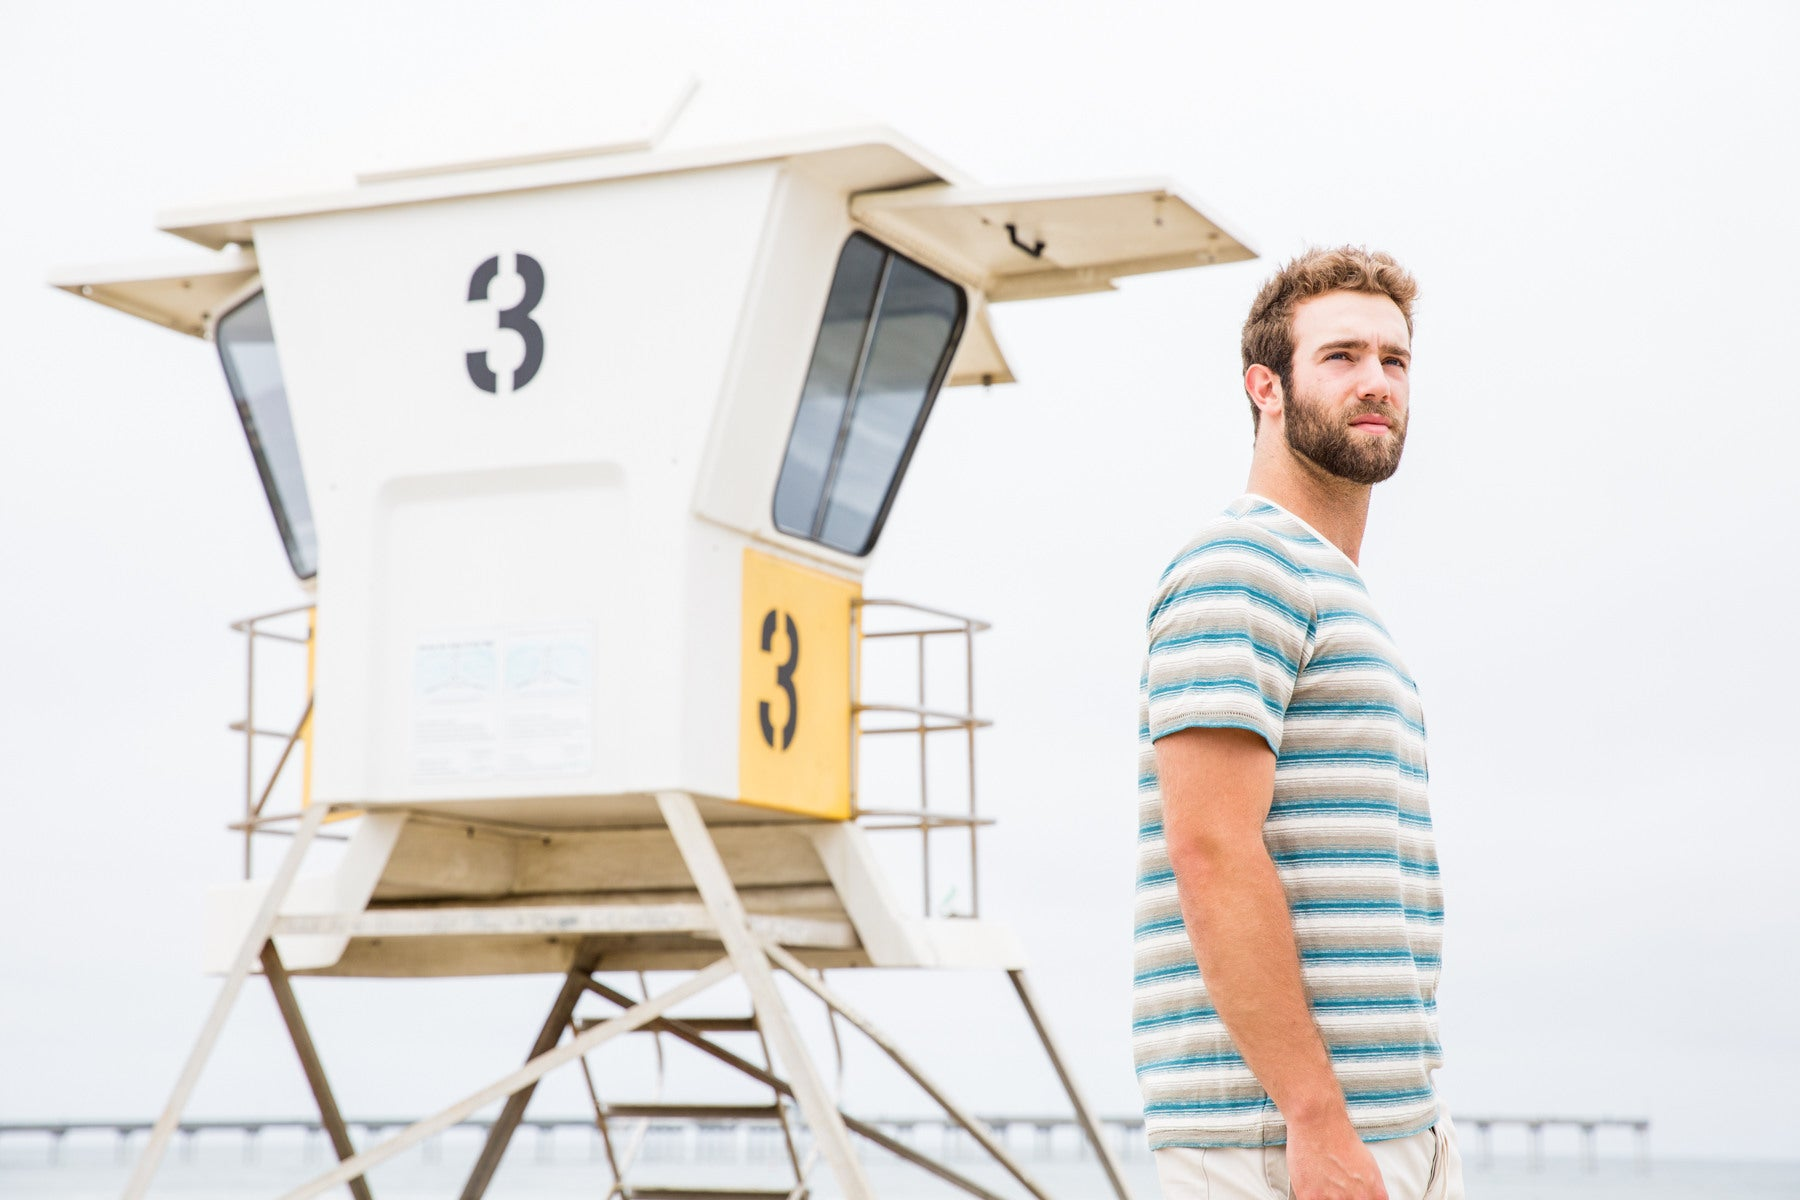 Daniel Norris at the beach